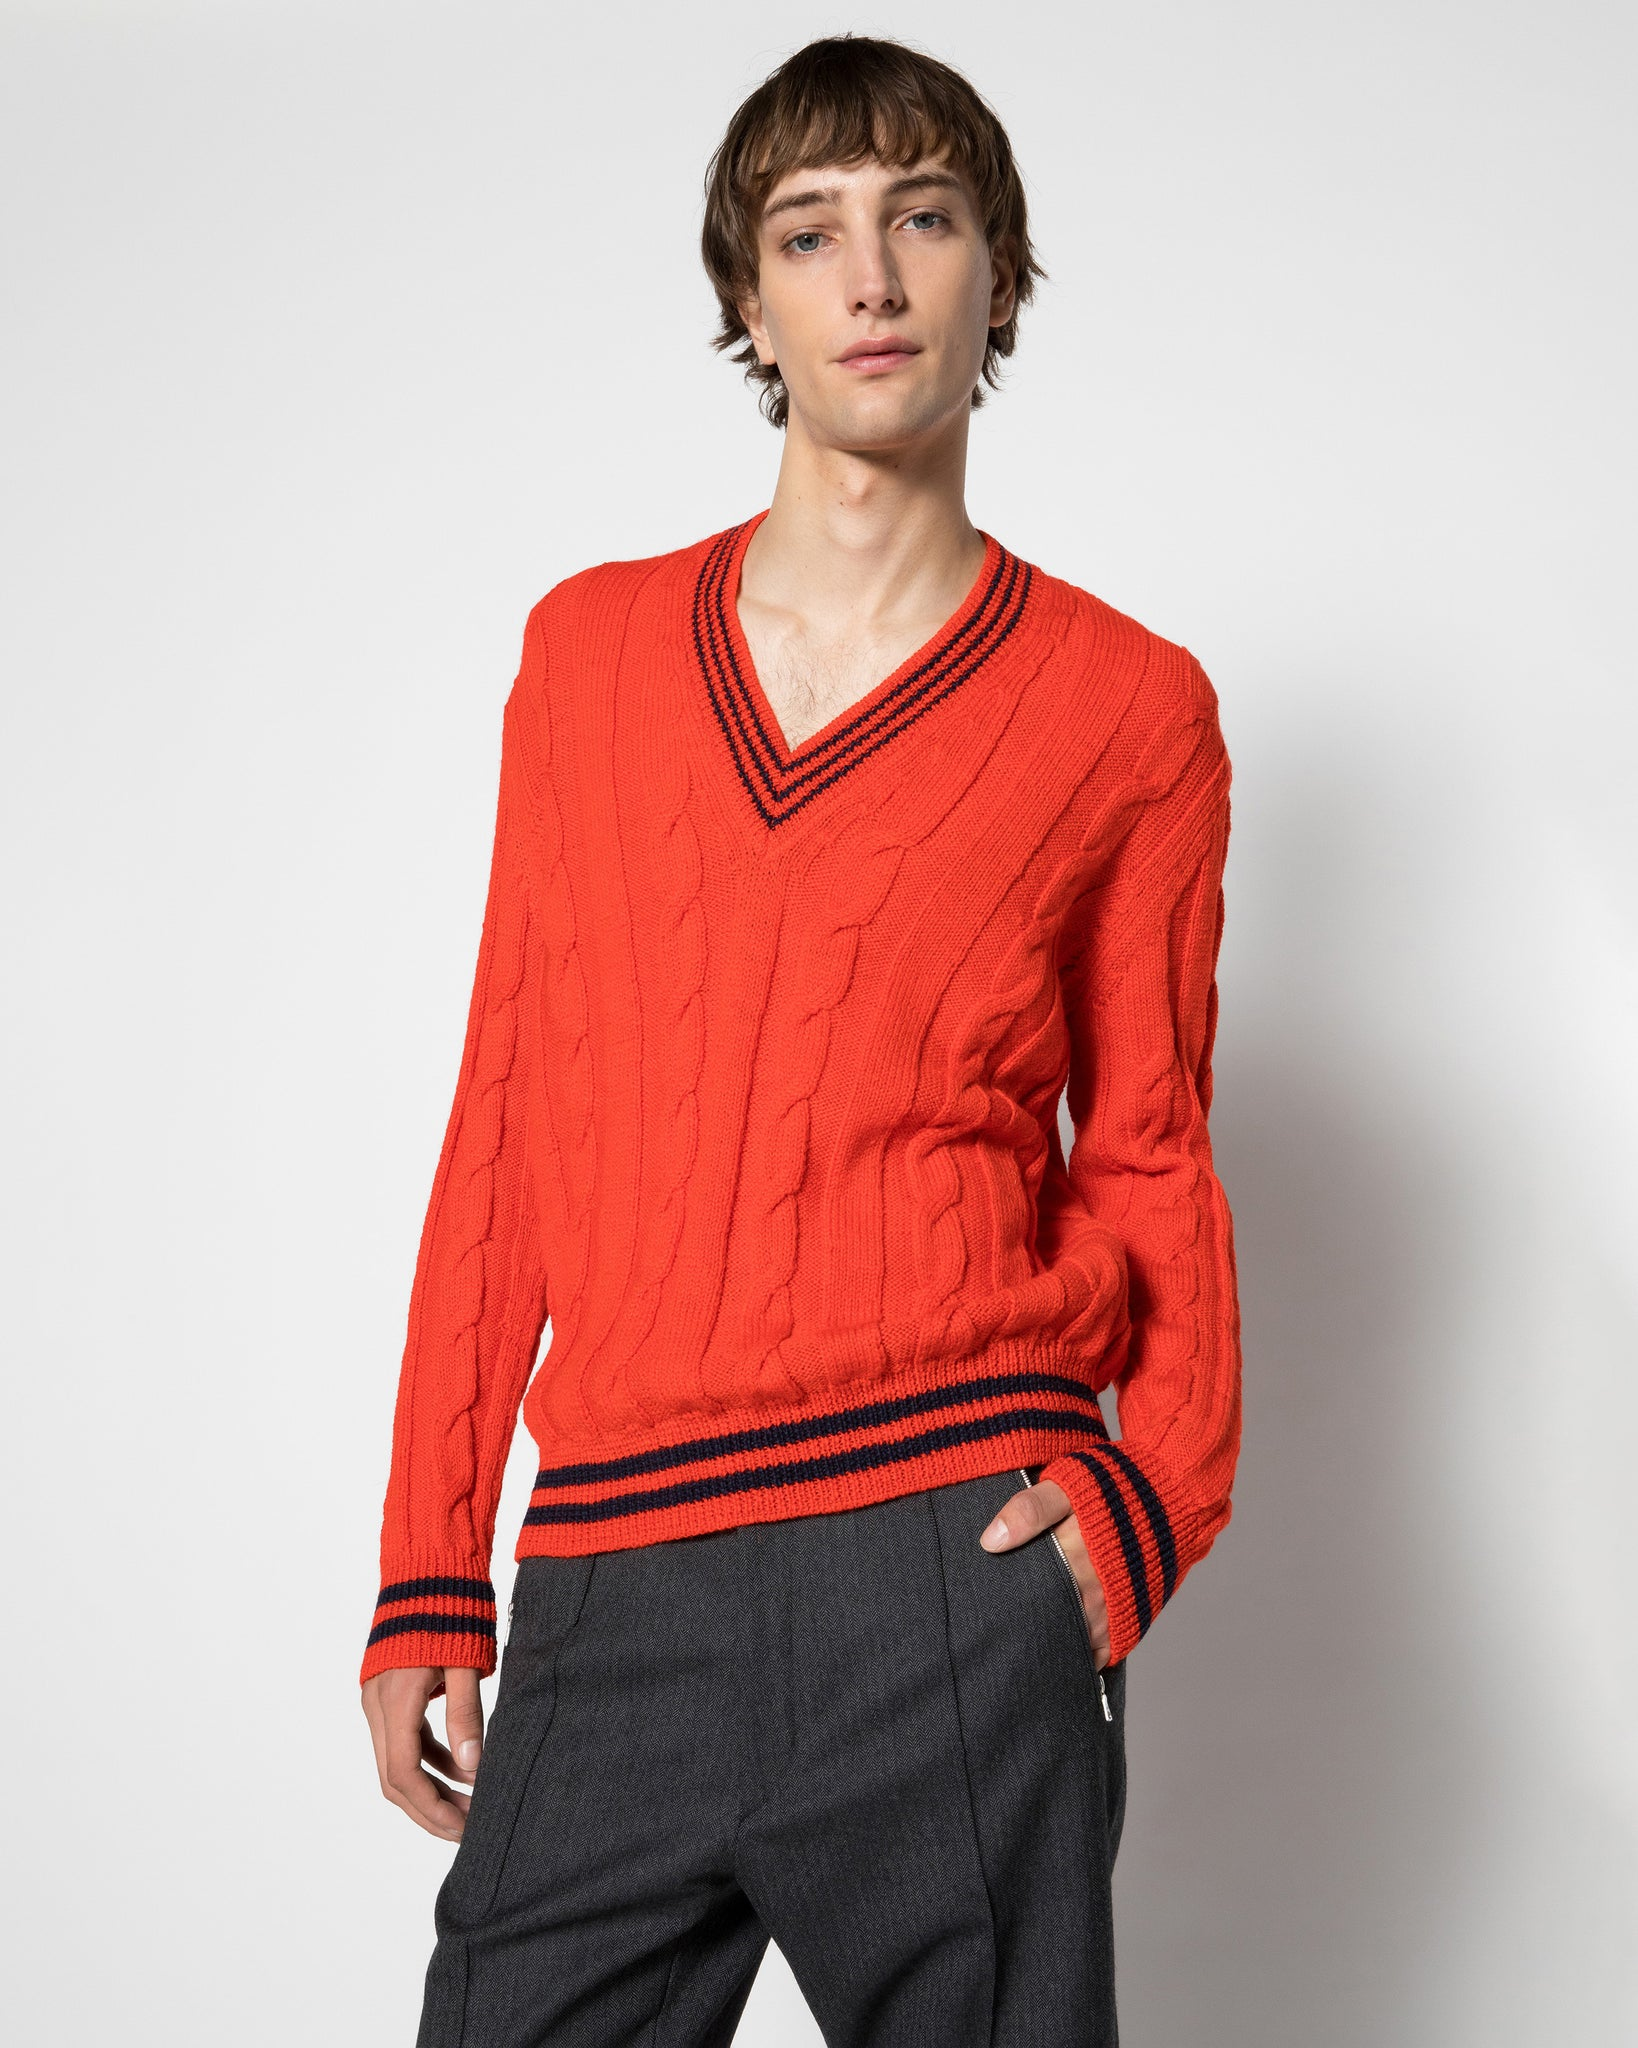 MANUS cable knit sweater